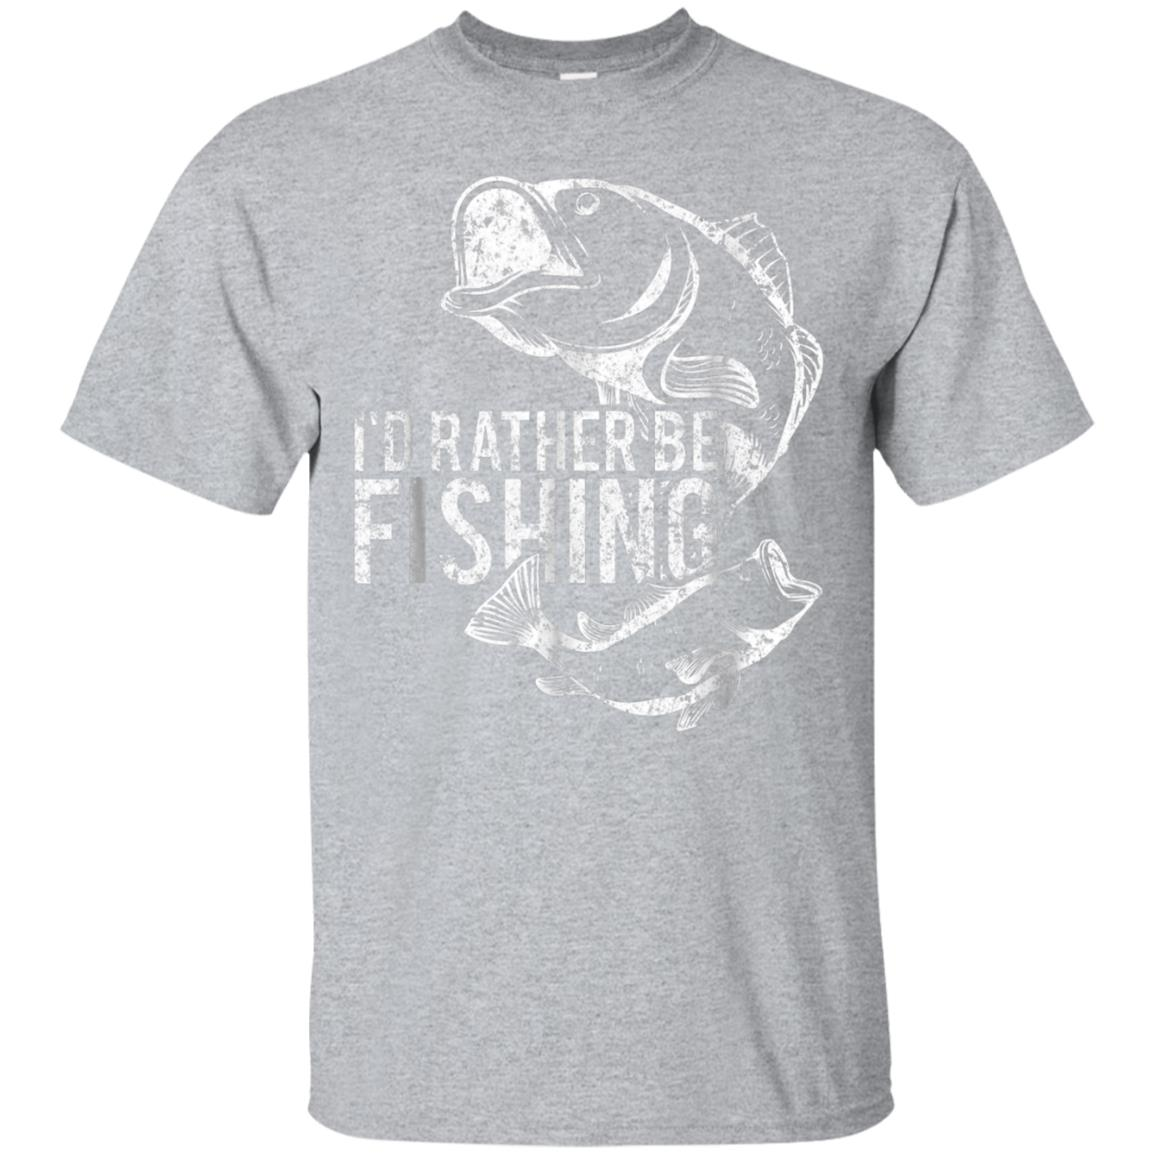 Fisherman Shirt for Men Women - I'd Rather Be Fishing Tshirt 99promocode